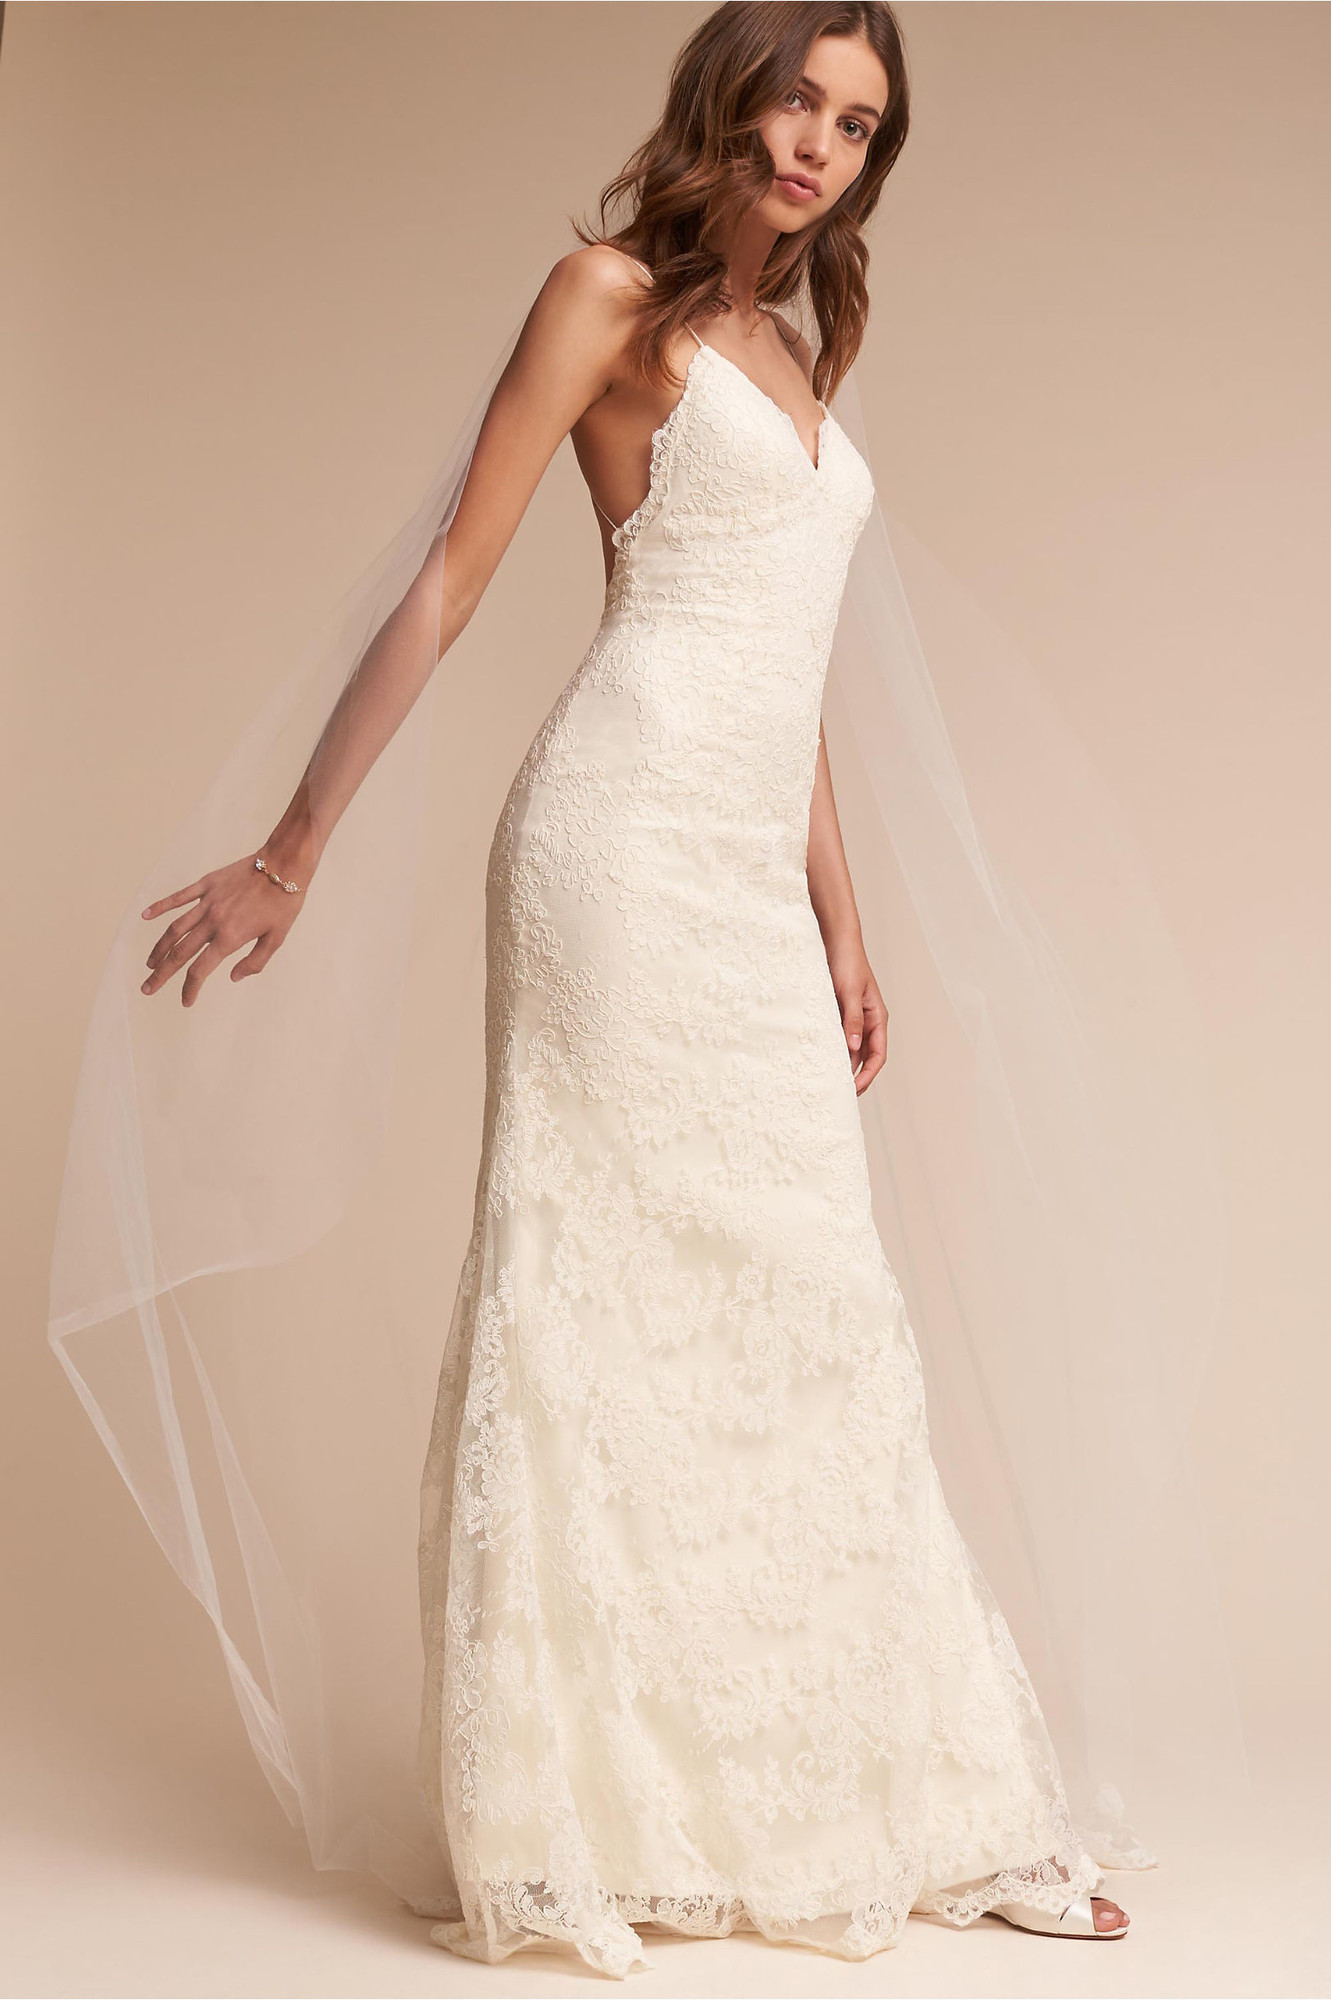 Inez Gown Sheath Wedding Dress By Bhldn Weddingwire Com